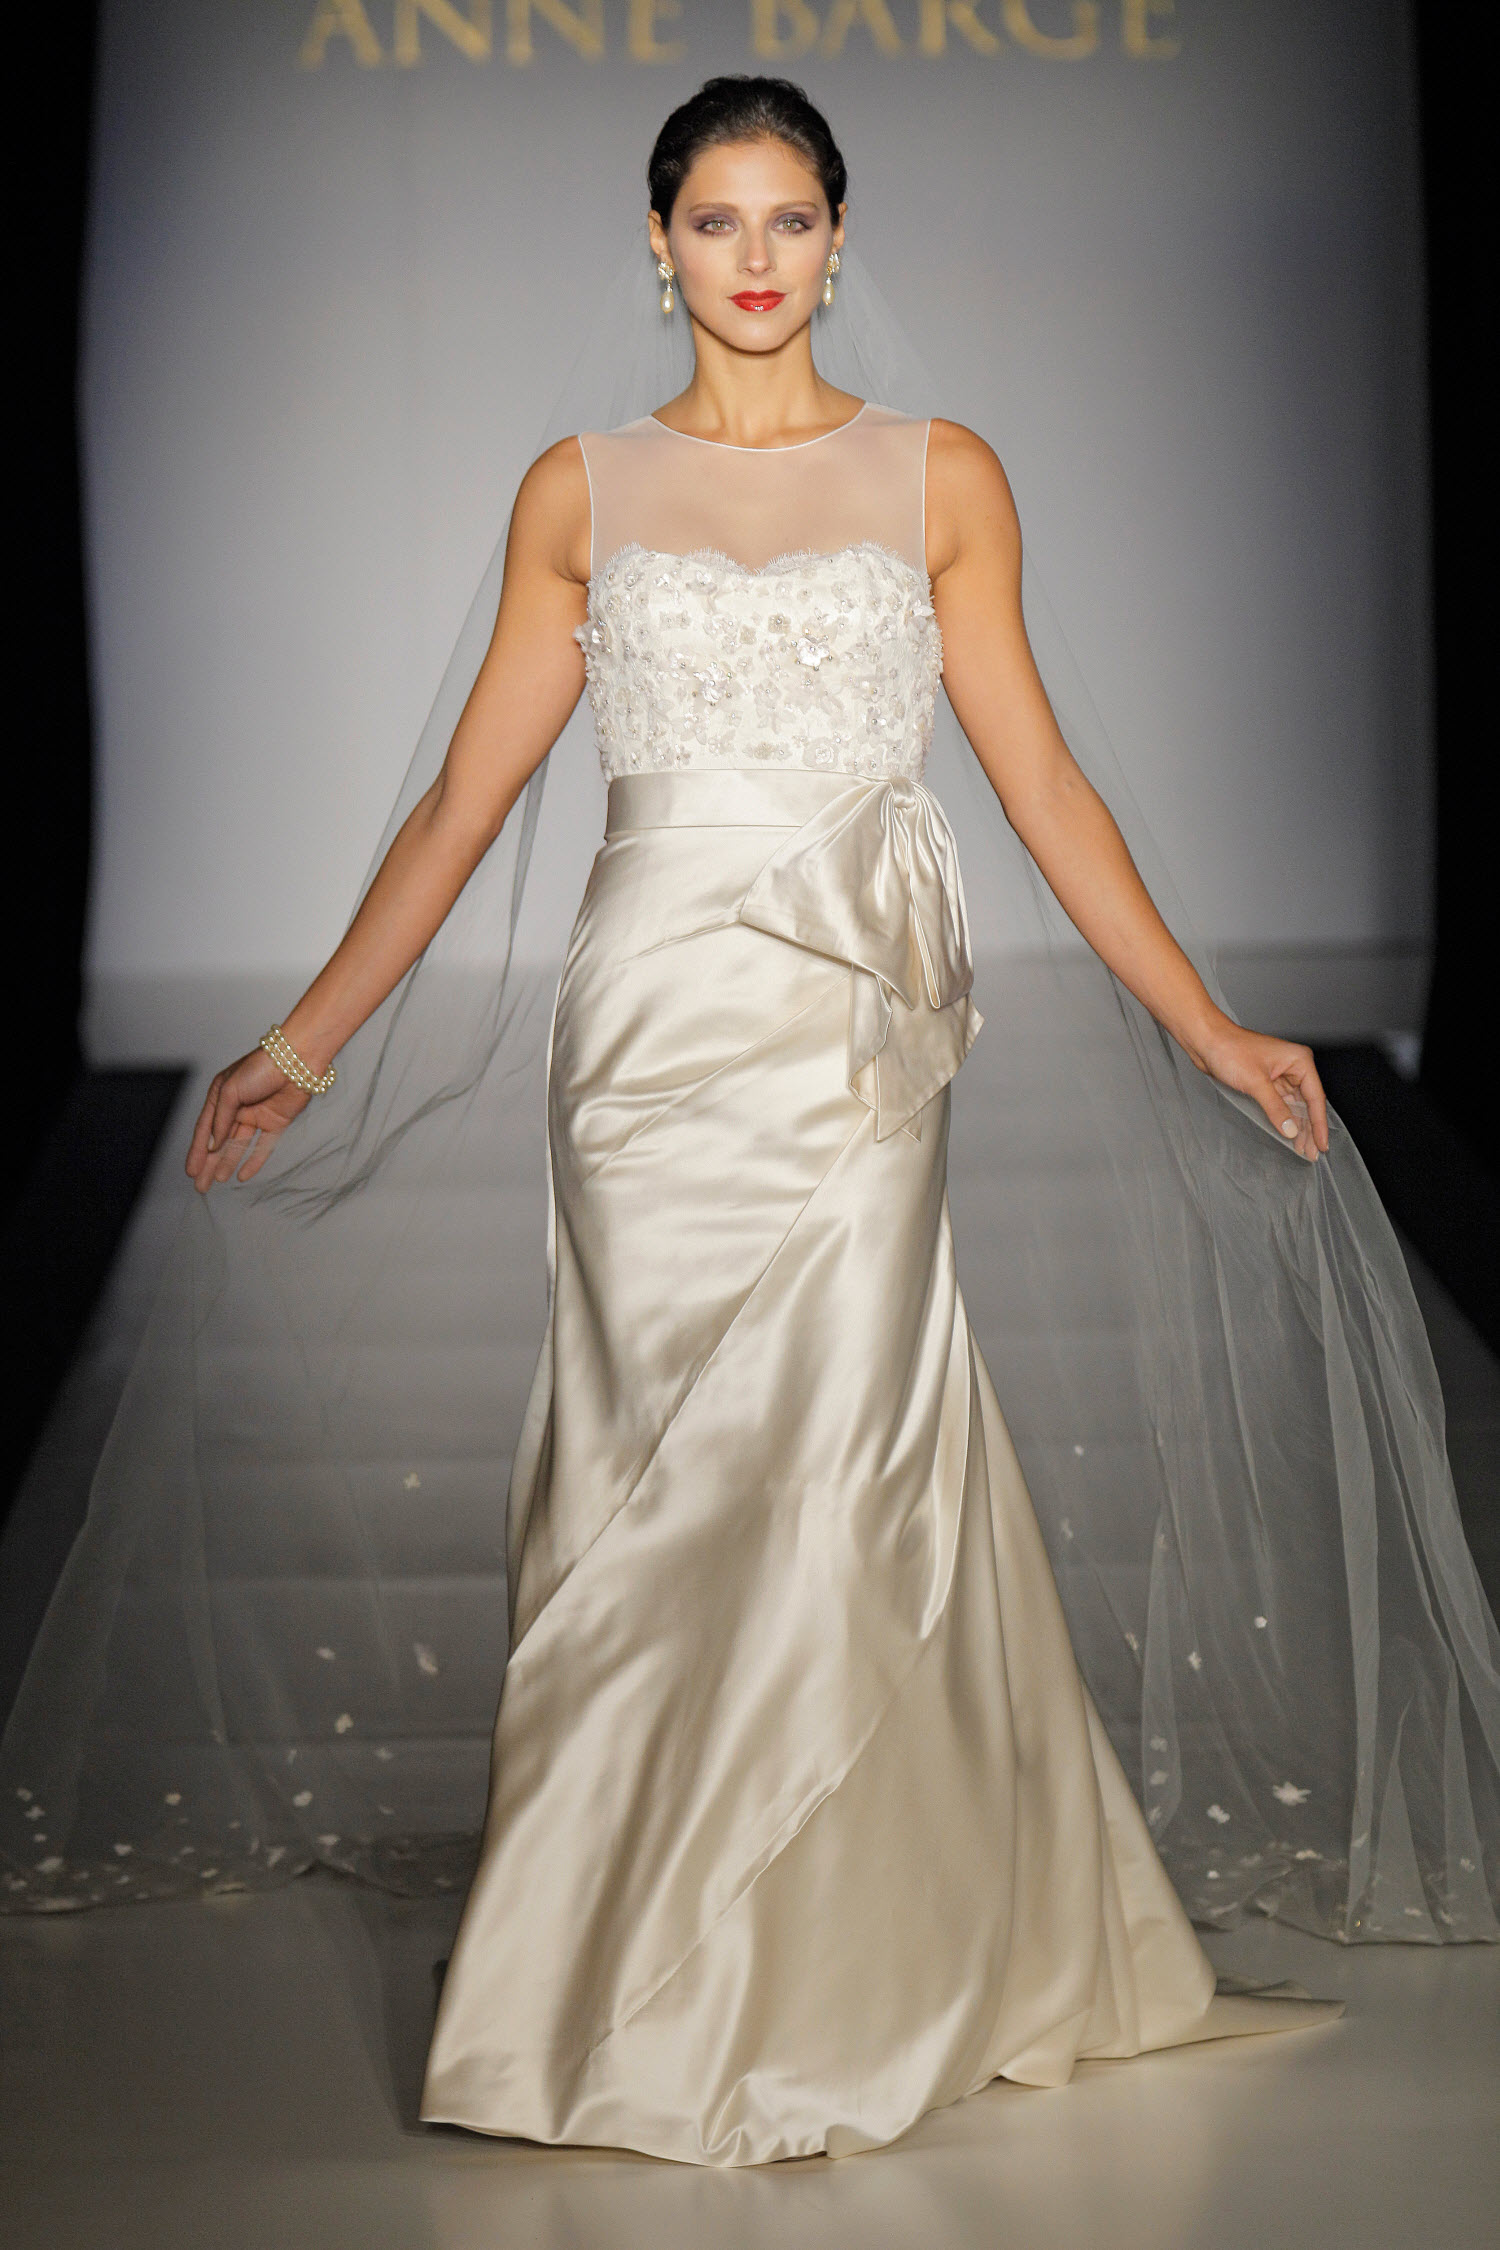 Things to know before buying Ivory Gown - 24 Dressi